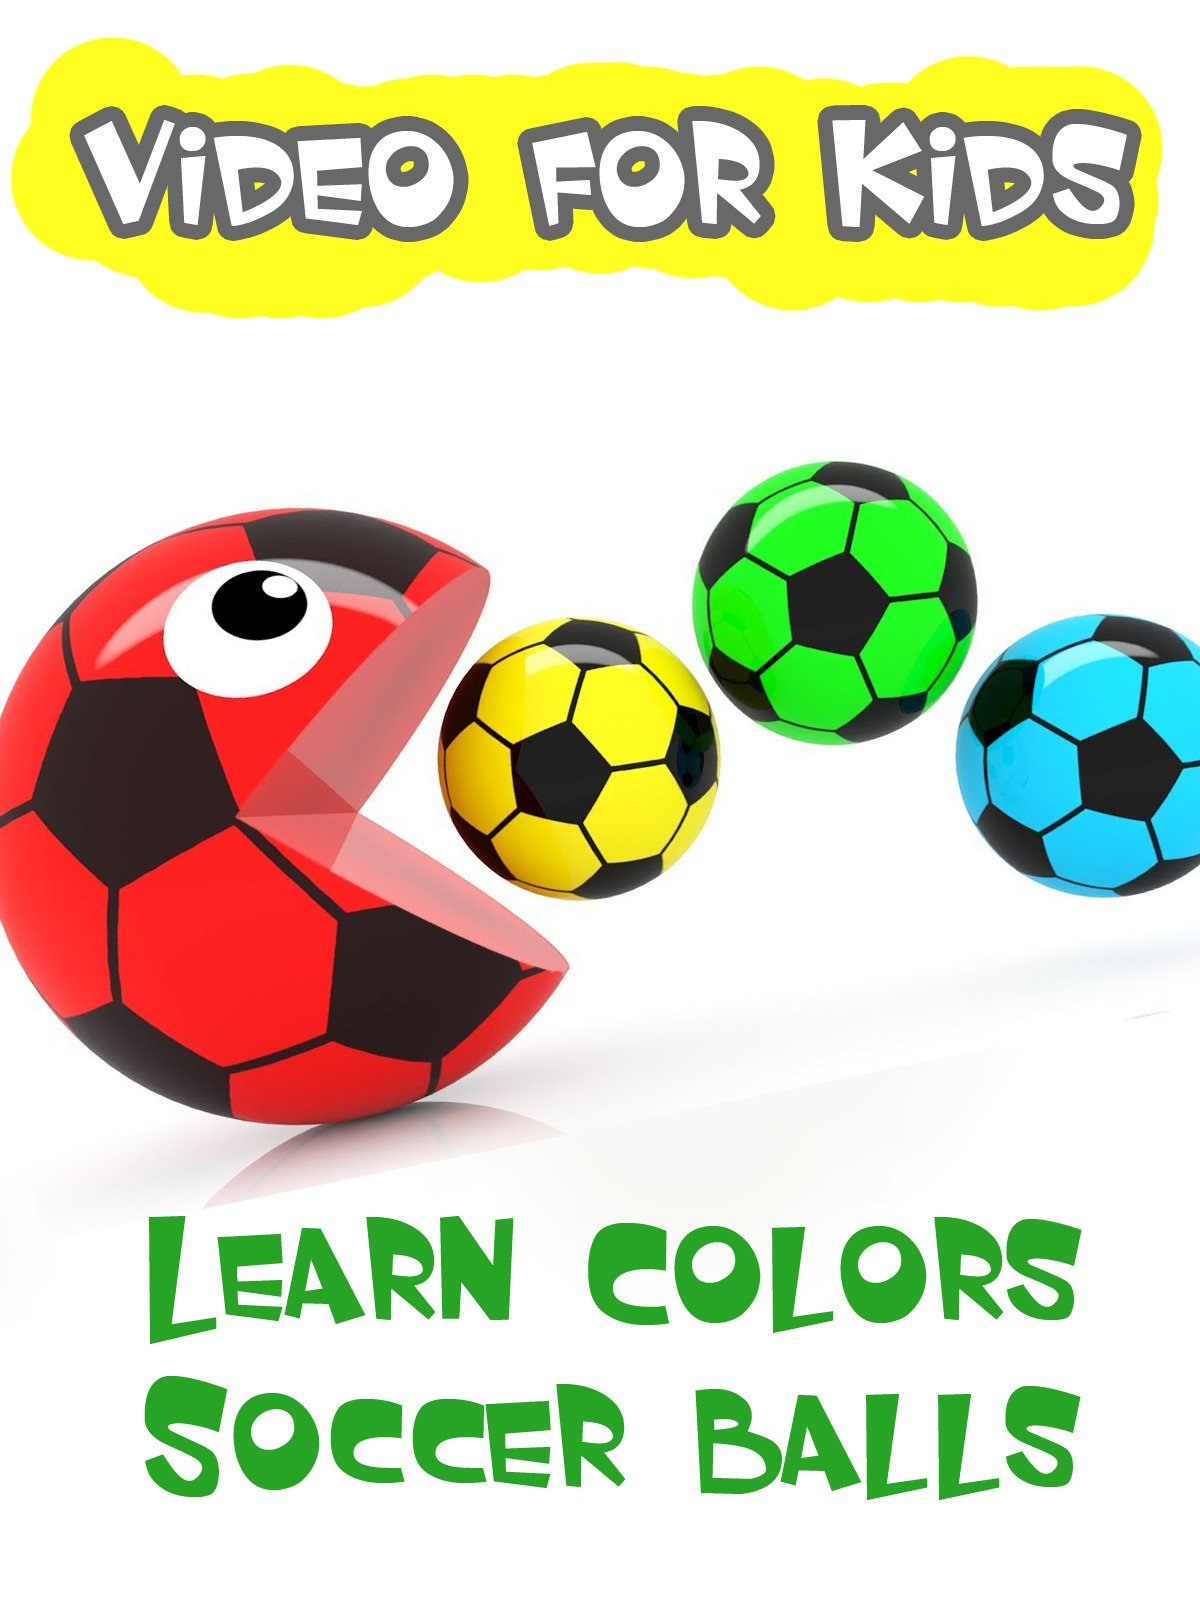 Learn Colors Soccer Balls